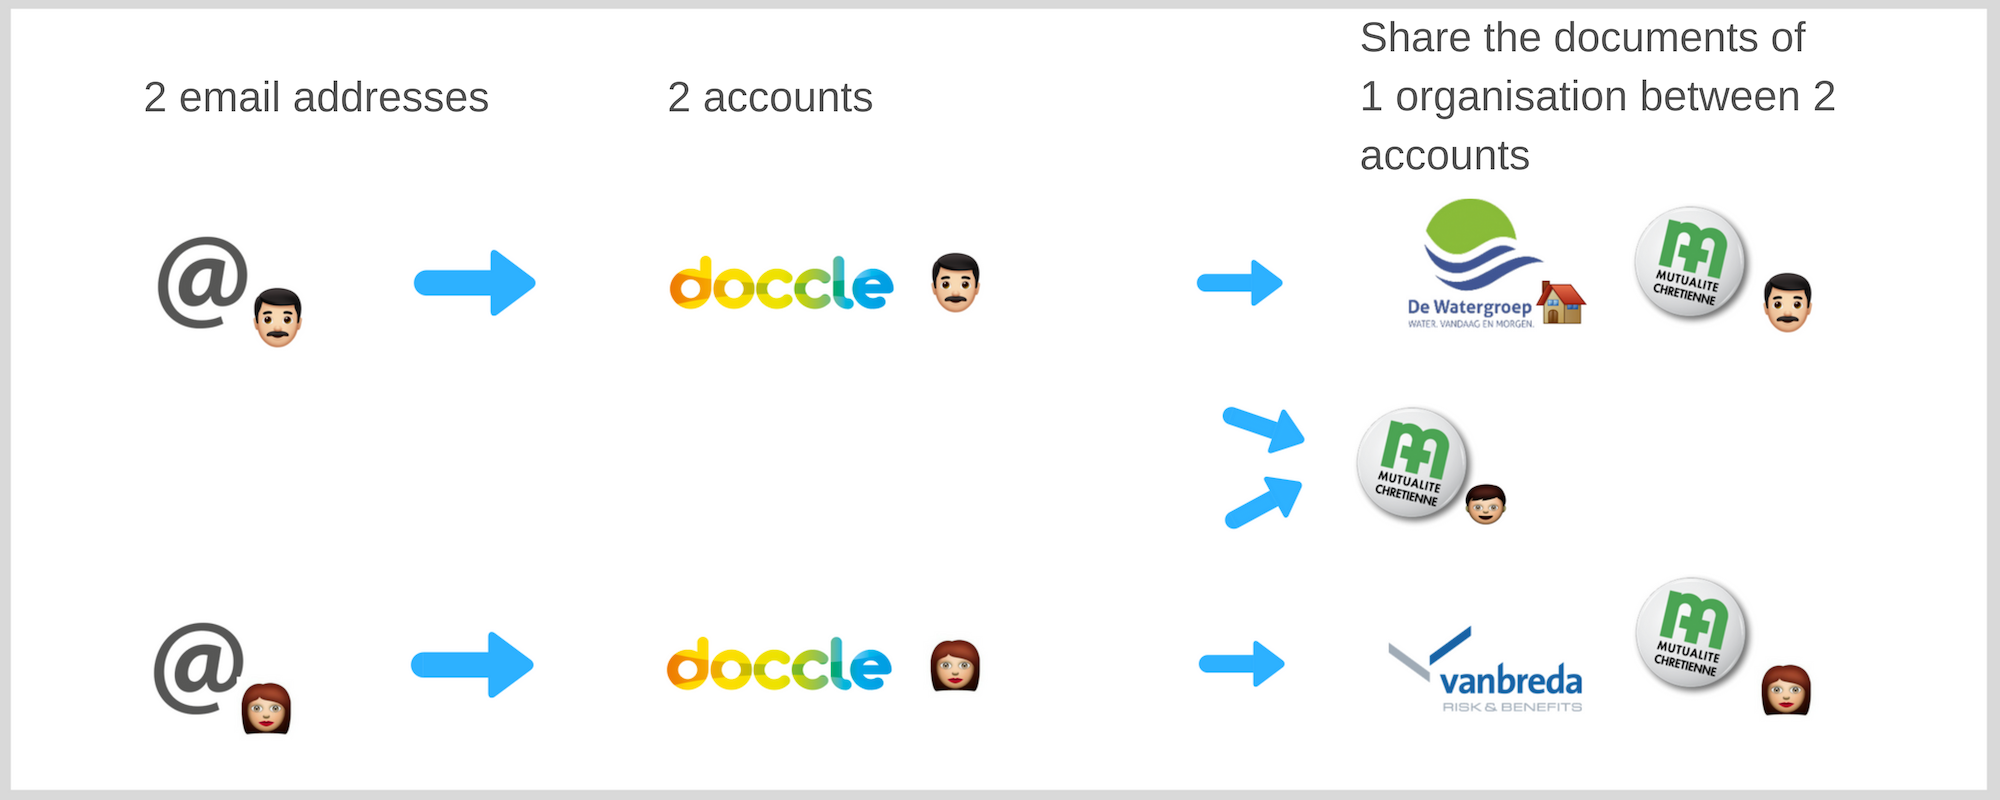 Digital organisation Doccle account2